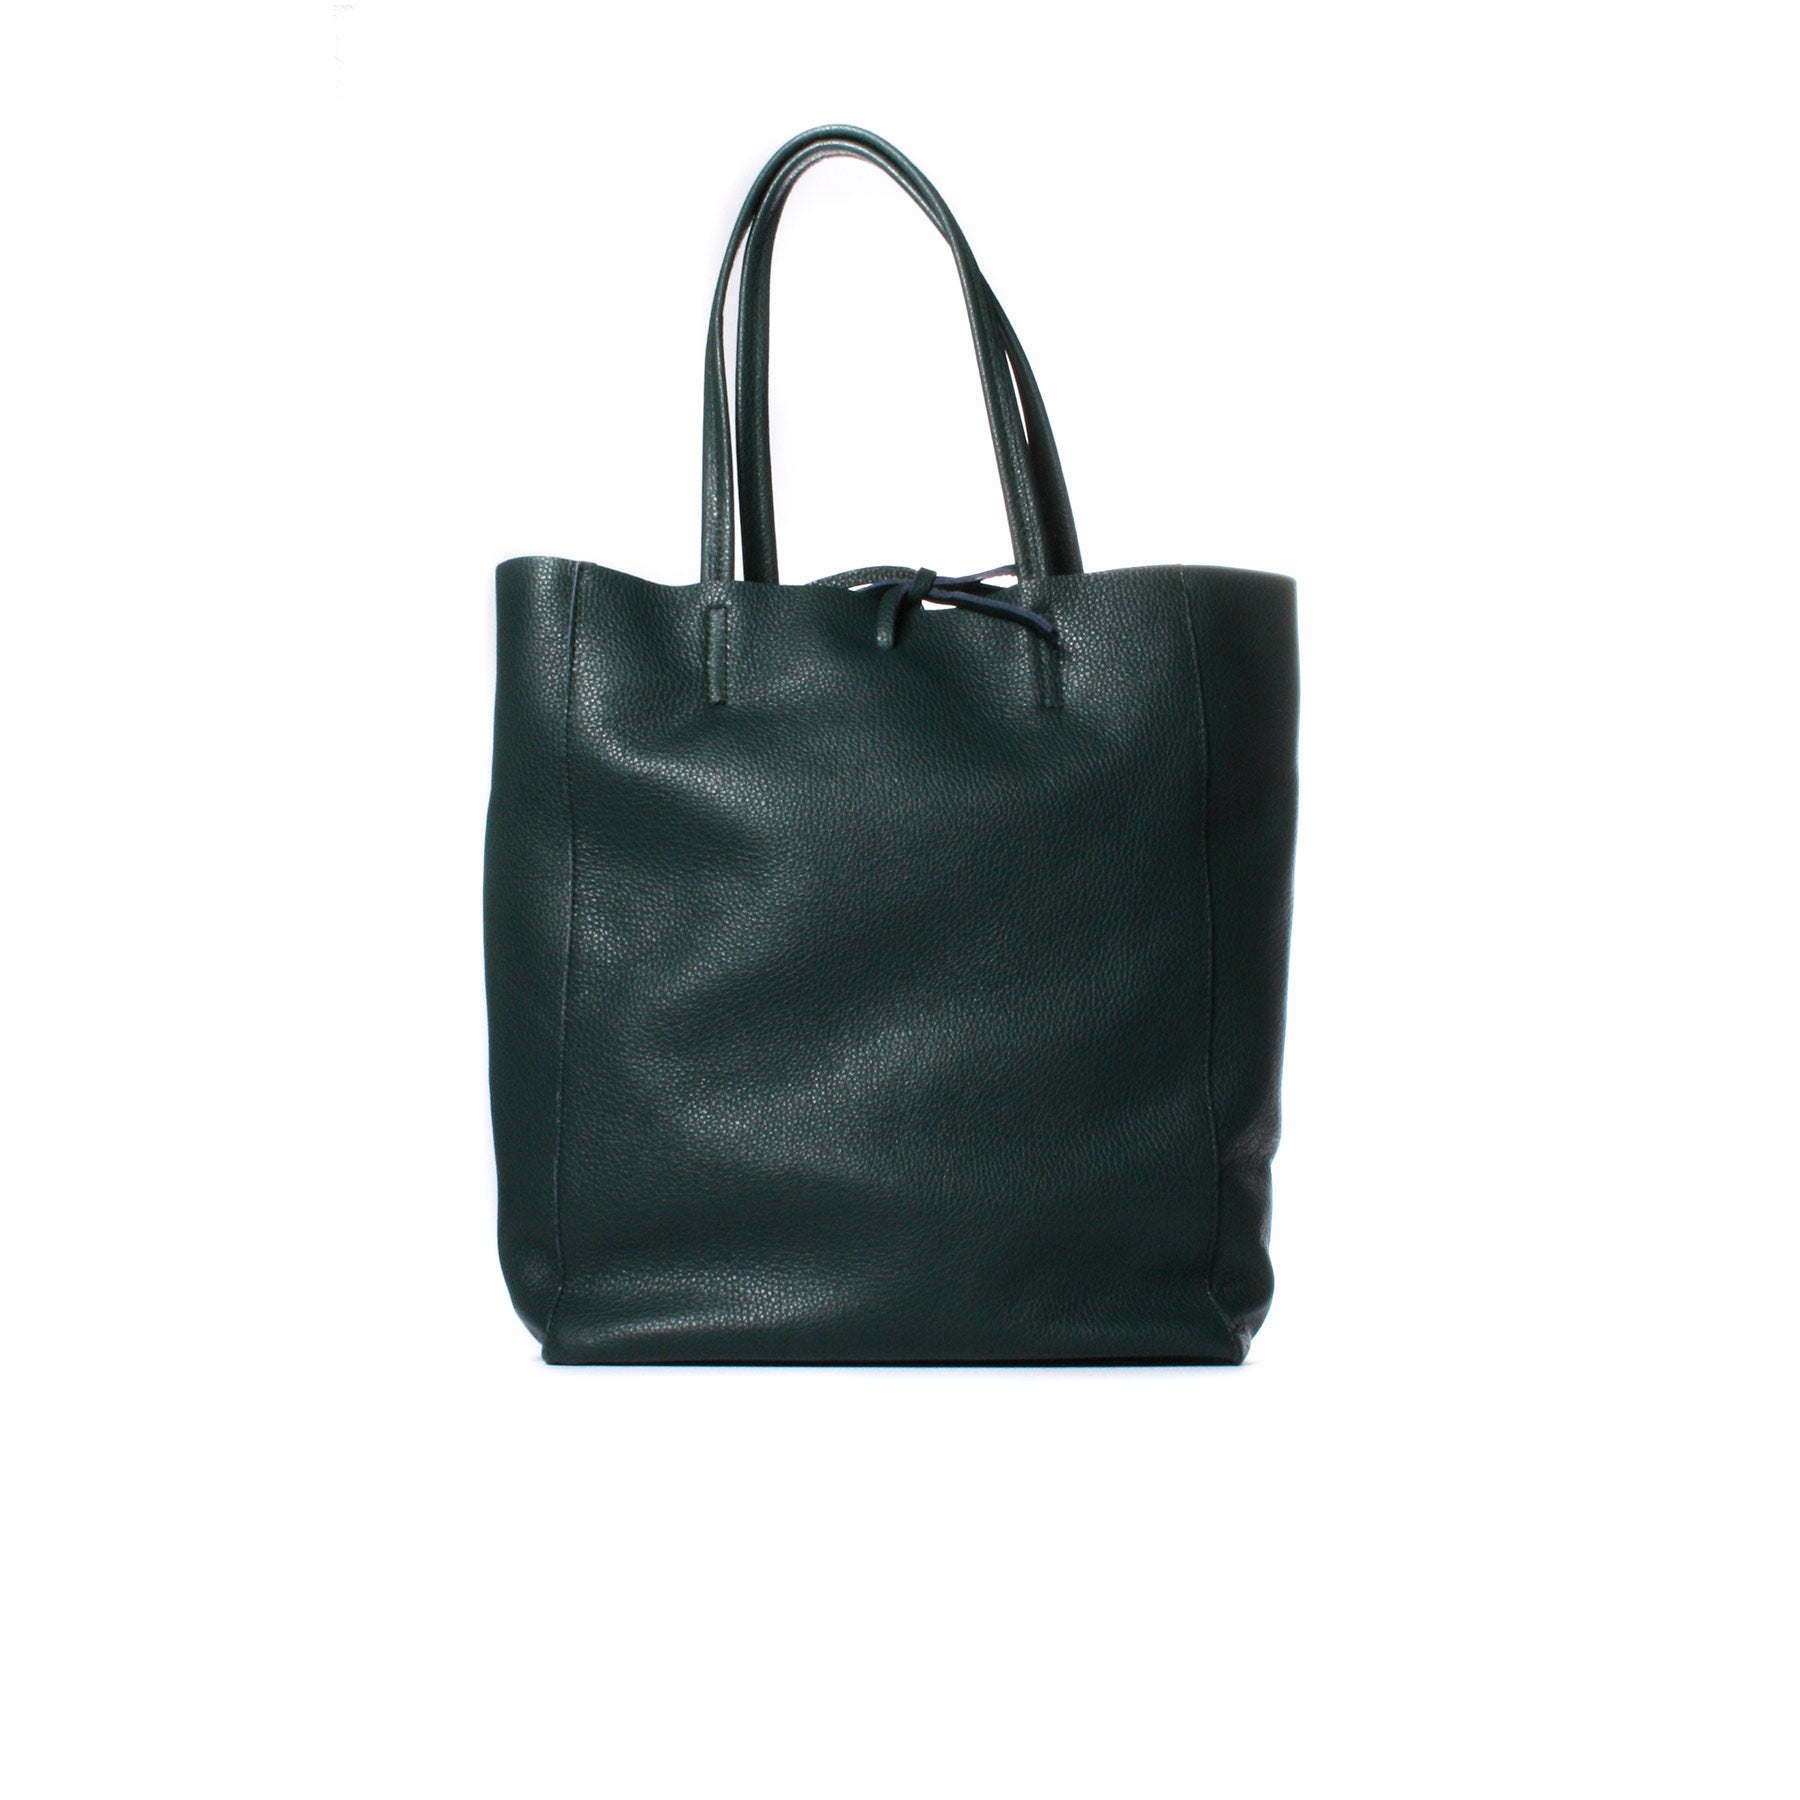 Colette Green Leather